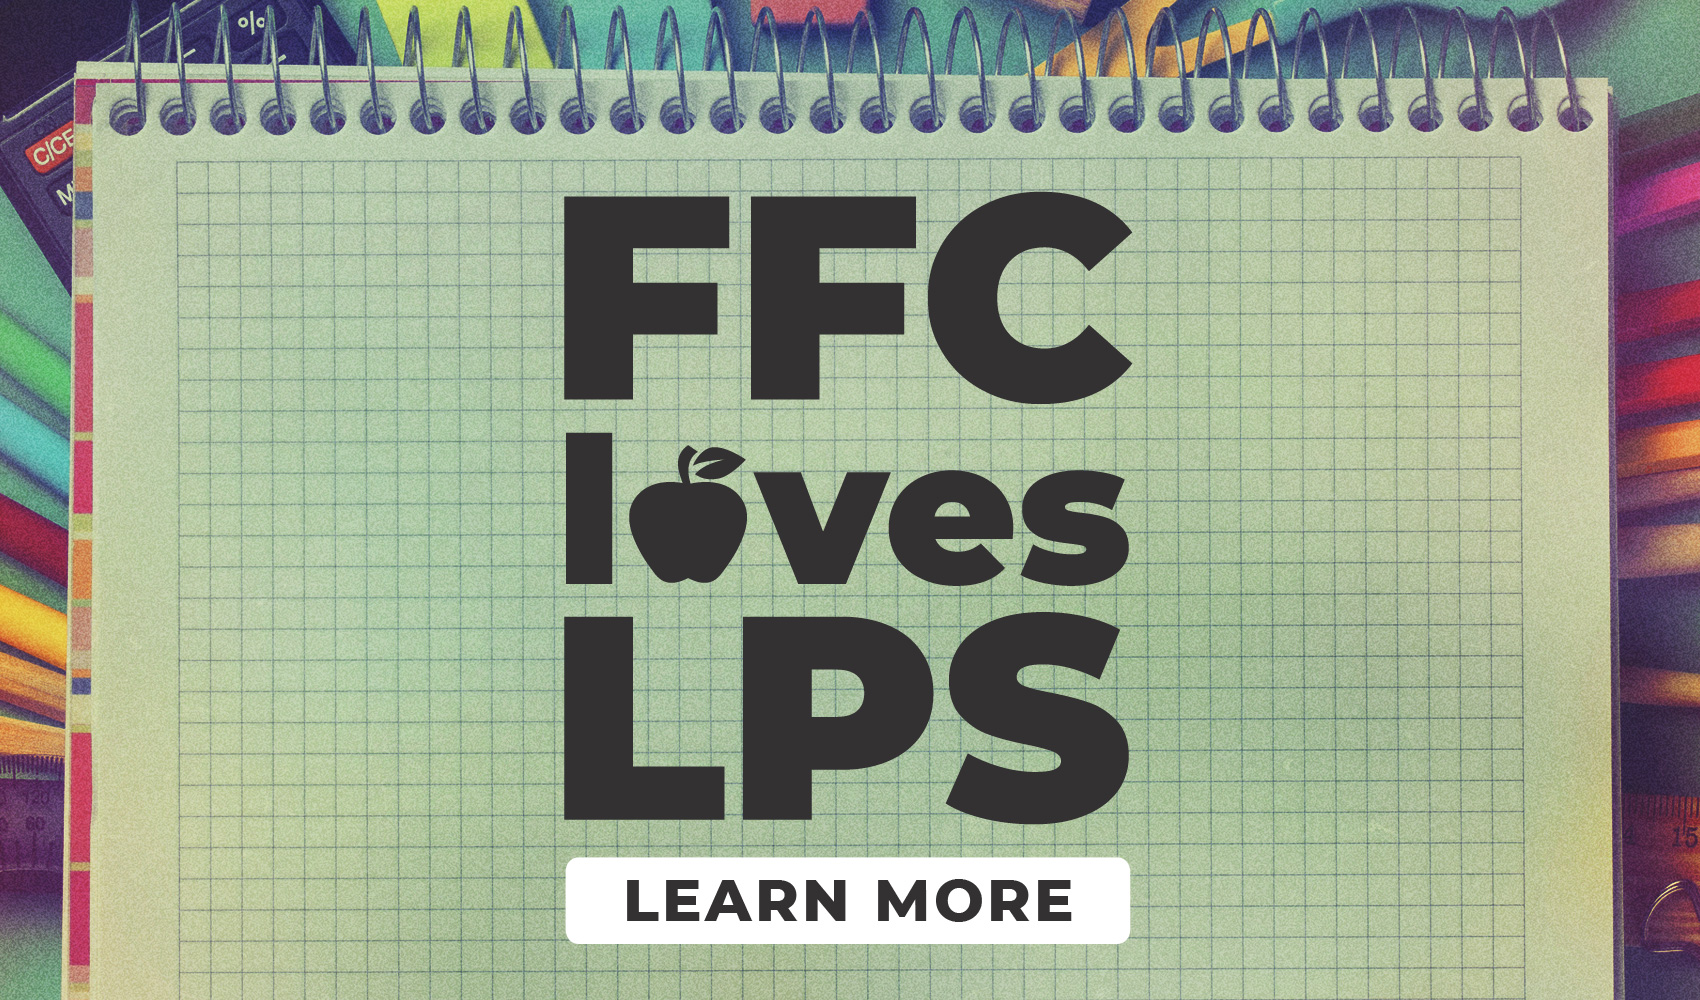 FFC Loves LPS